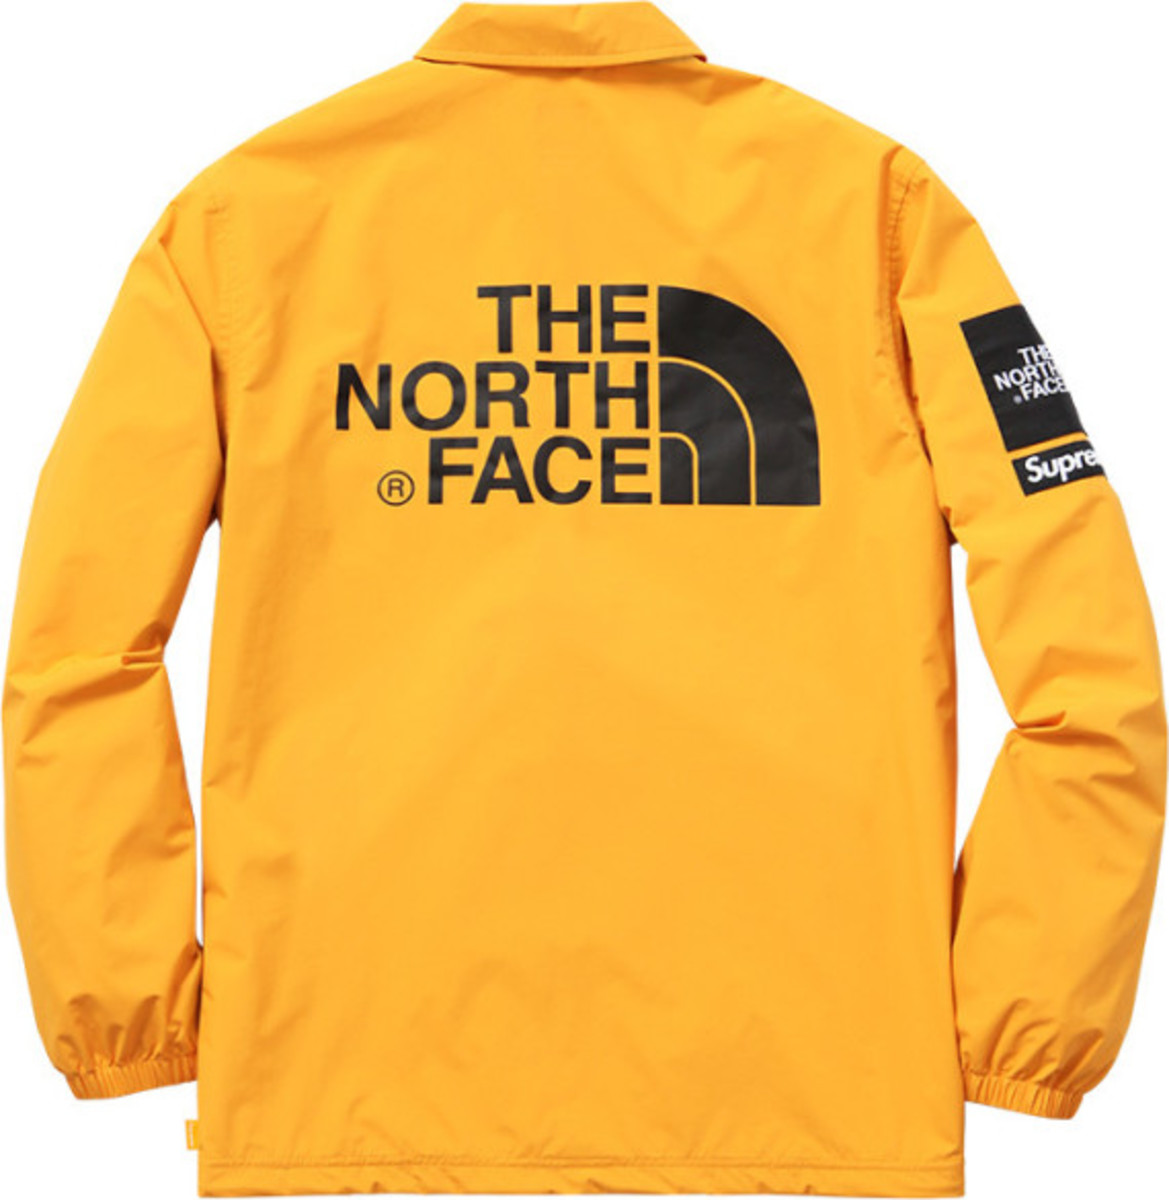 Supreme x The North Face - Spring/Summer 2015 Apparel and Gear Collection - 19